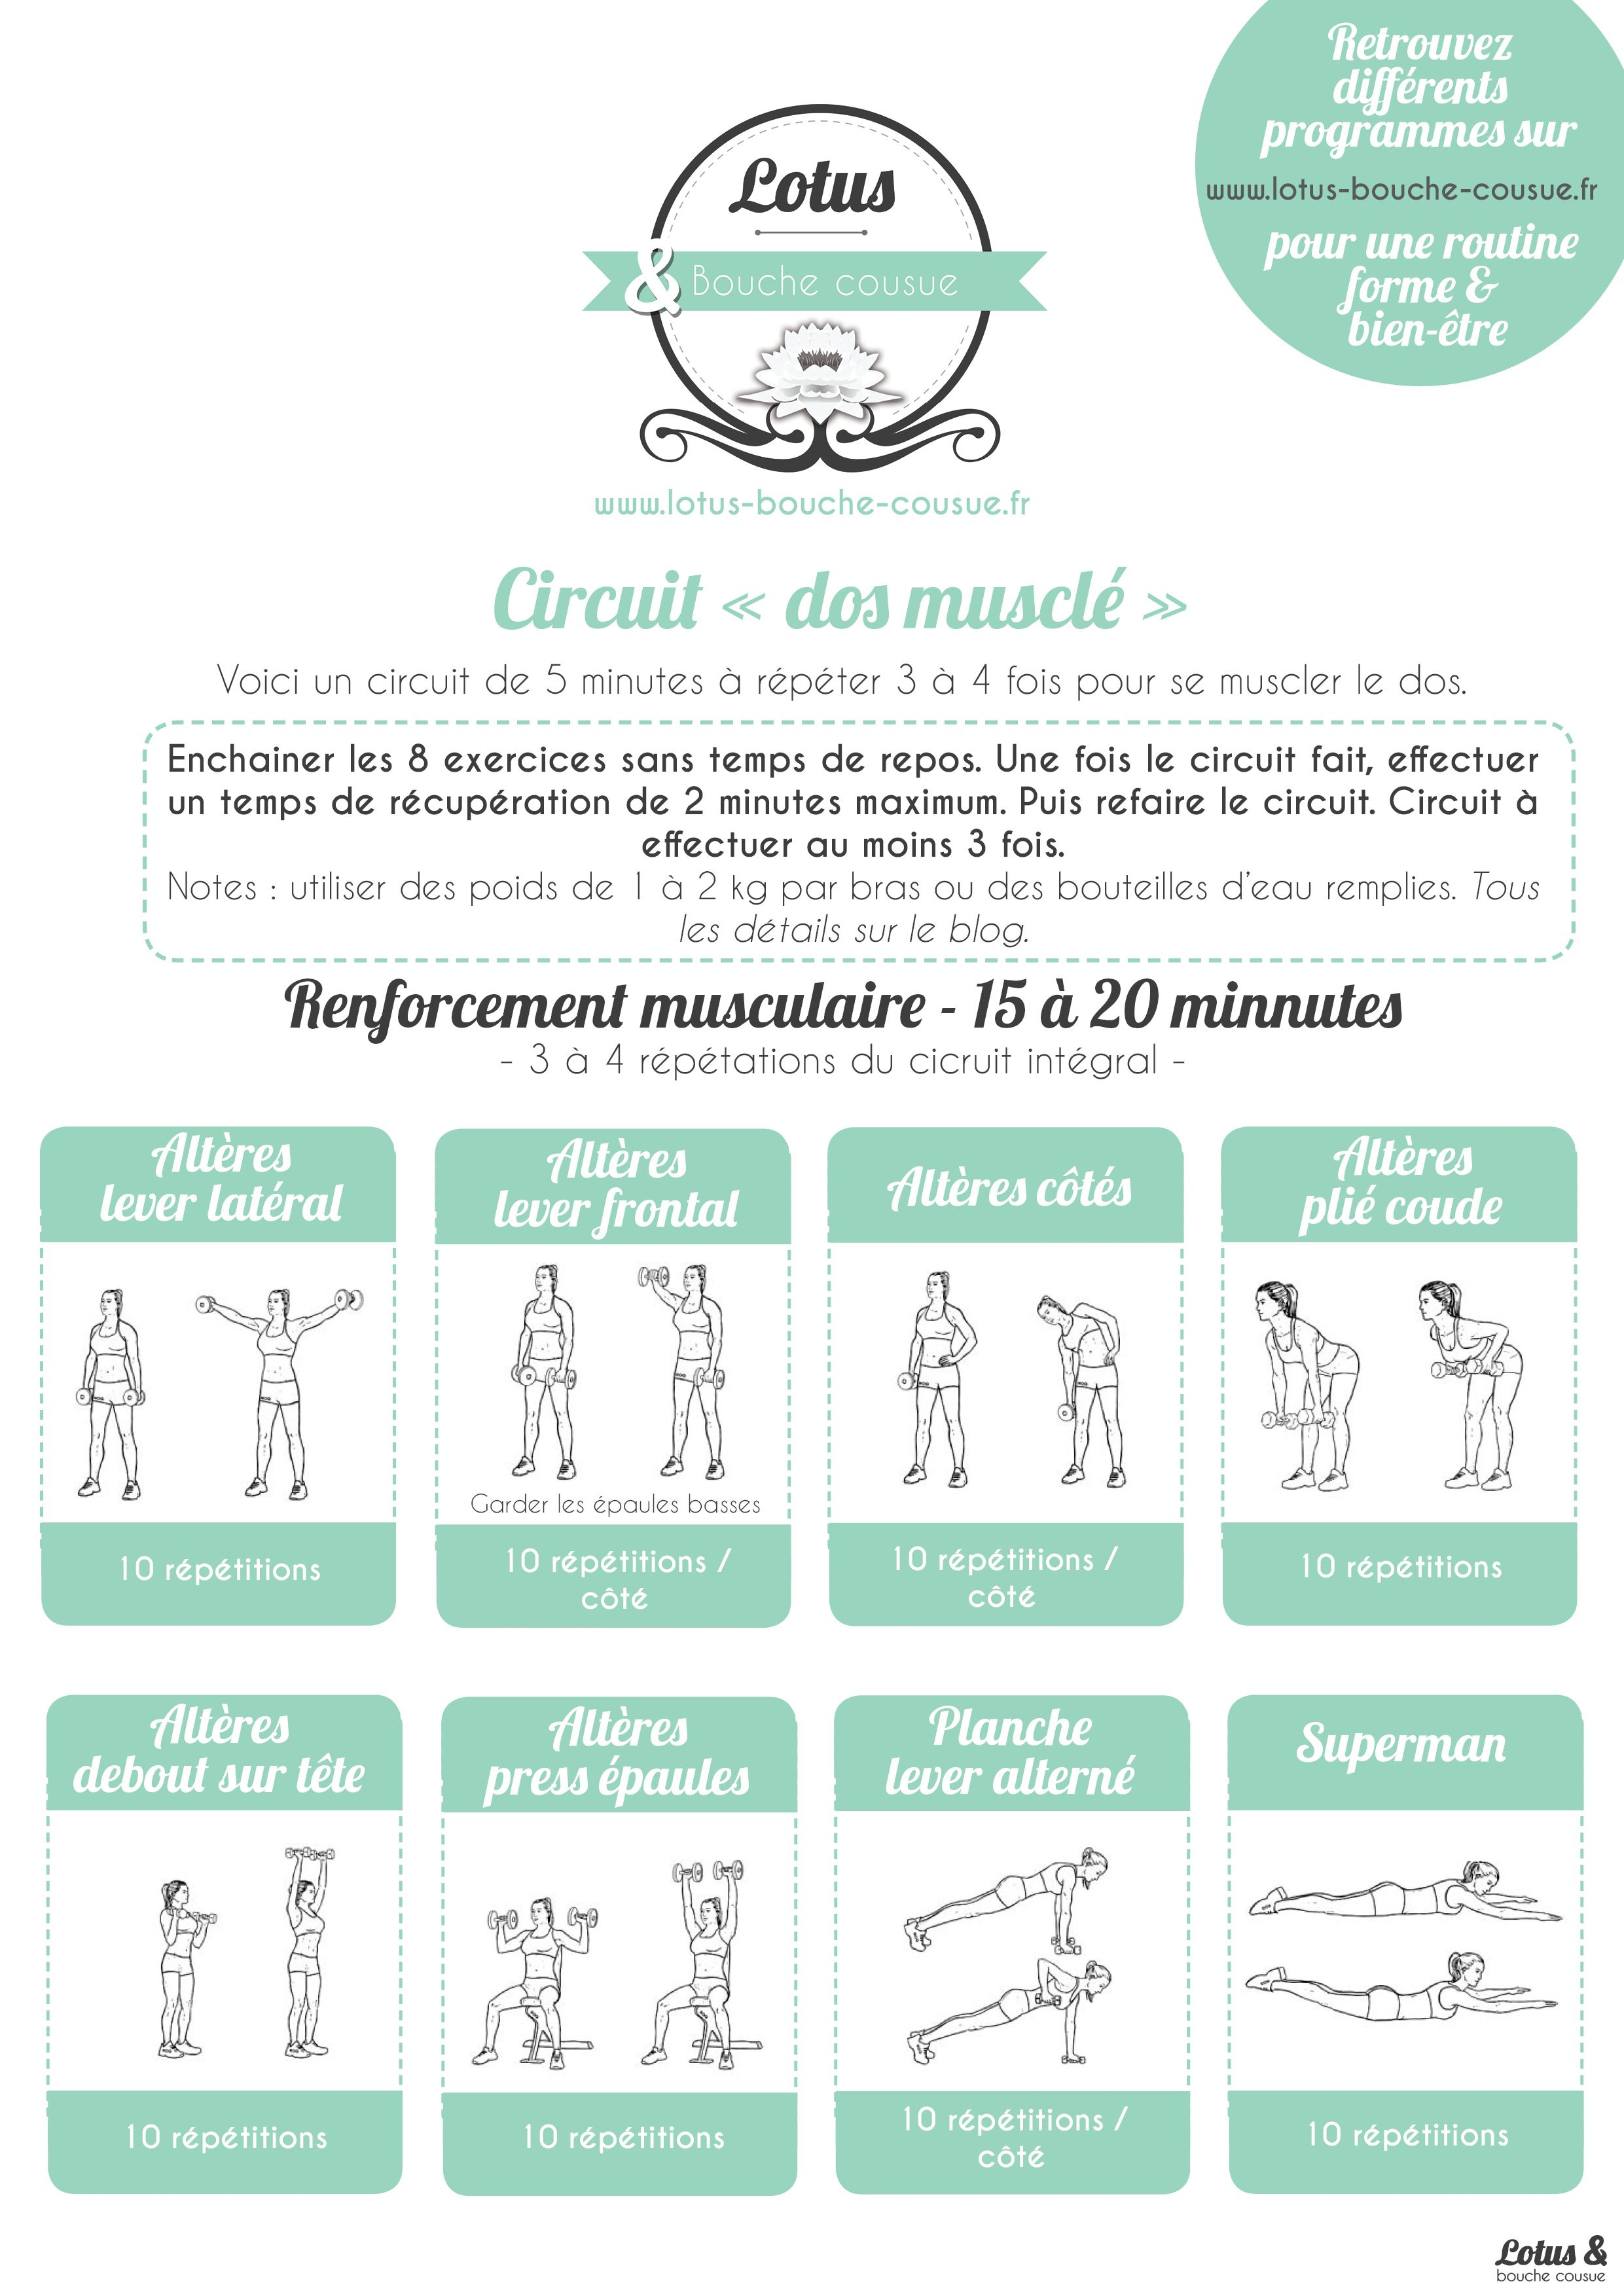 Circuit Cibl Pour Un Dos Muscl Mise En Forme Pinterest Full Body Workout With Weights Workouts Part I Back Sport Entrainement Programme Mincir Muscler Fitfrenchies Fitness Musculation Femmes Motivation